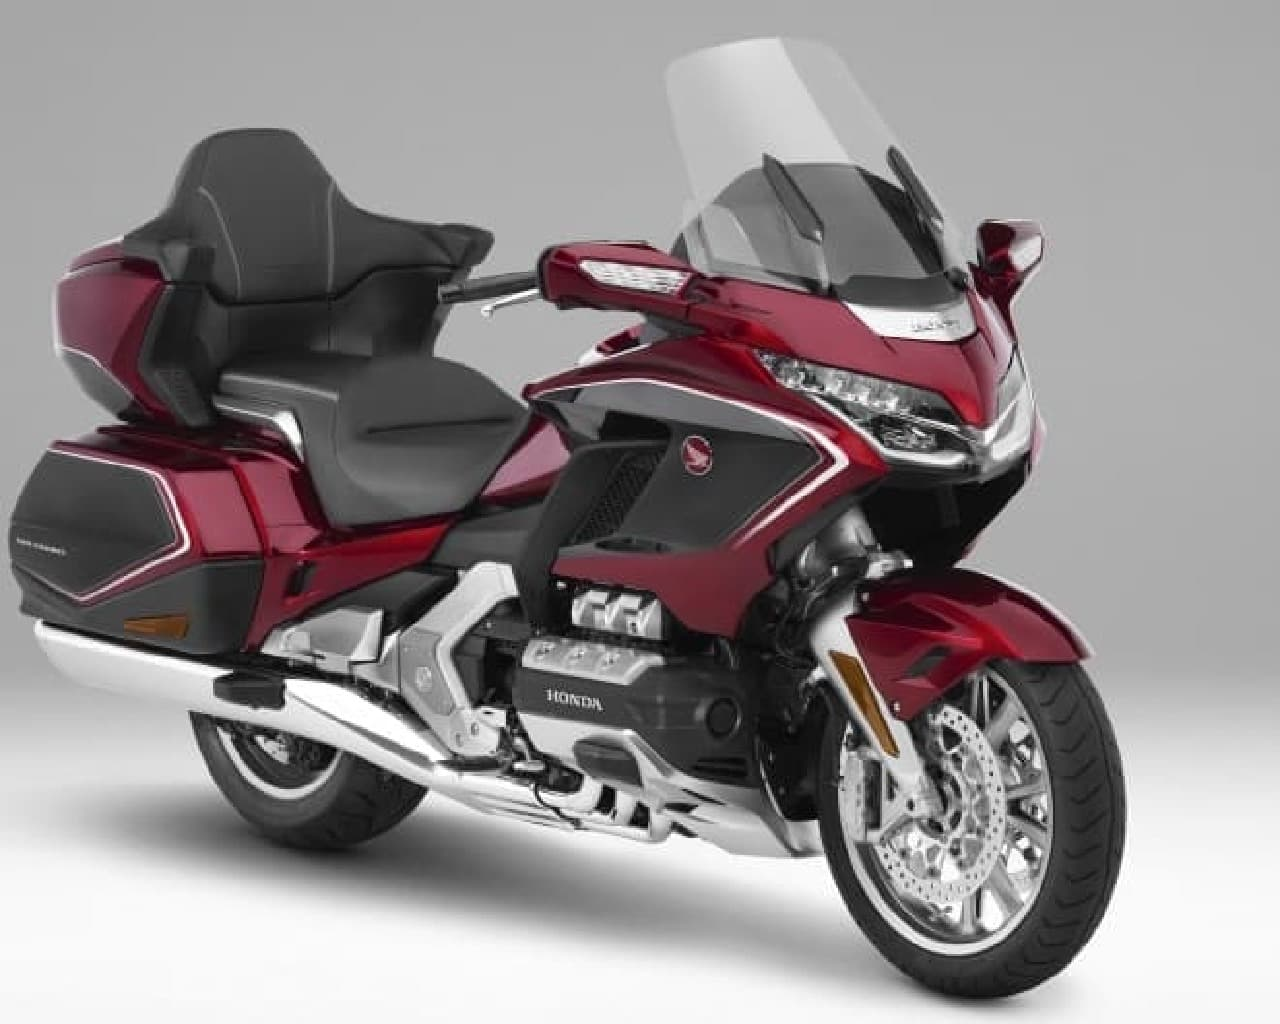 最上位モデル「Gold Wing Tour Dual Clutch Transmission<AIRBAG>」